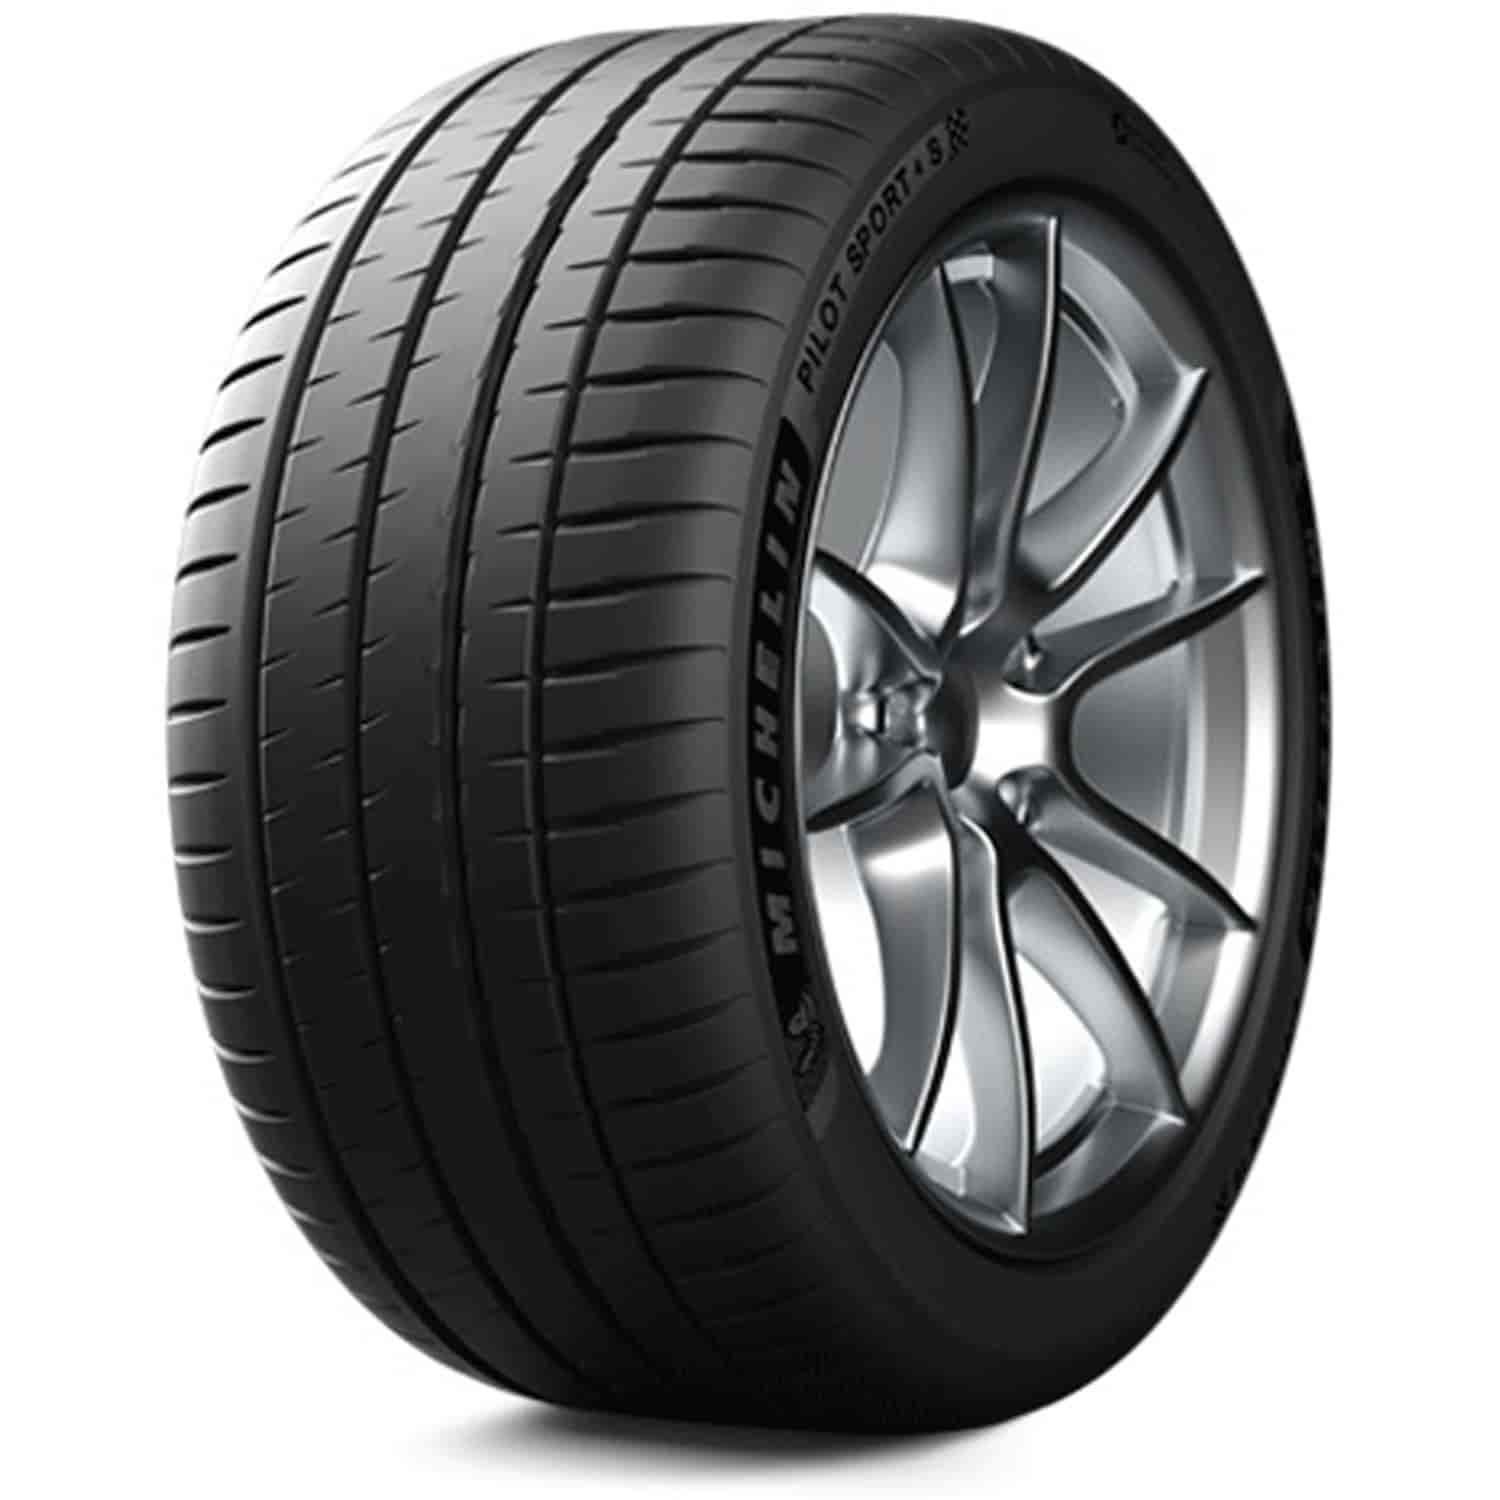 Michelin Pilot Sport 4S Ultra High Performance Summer Tire